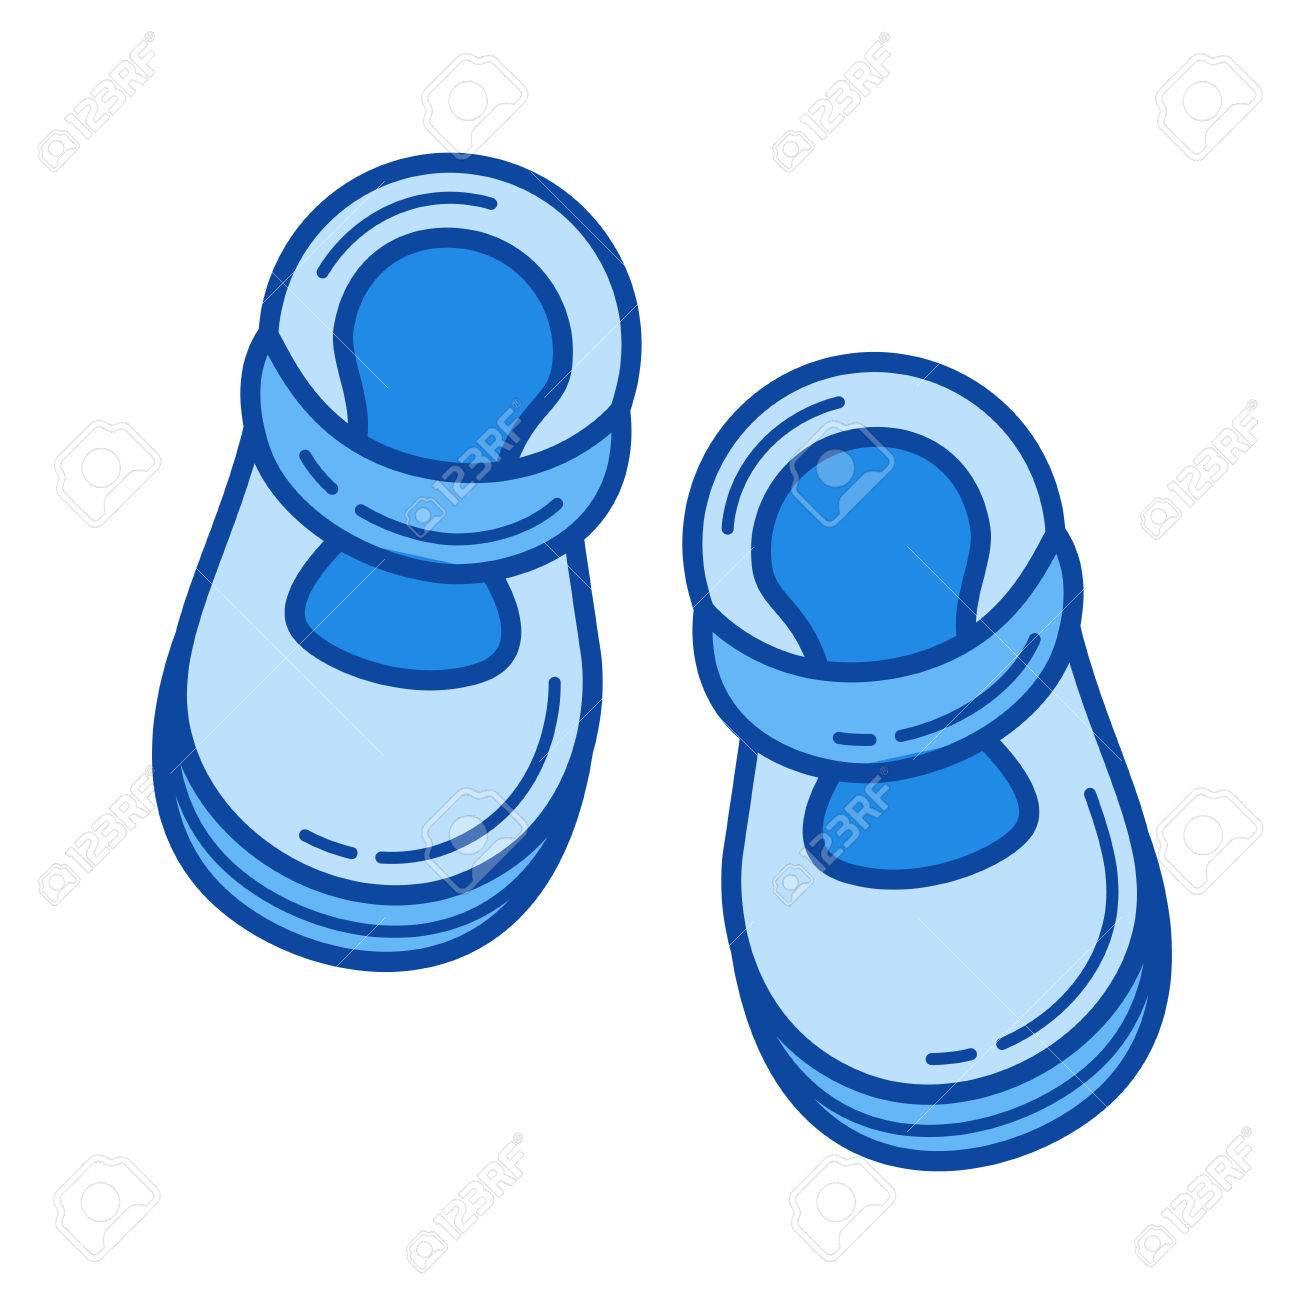 Baby Shoes Vector Line Icon Isolated On White Background Baby Royalty Free Cliparts Vectors And Stock Illustration Image 84943090